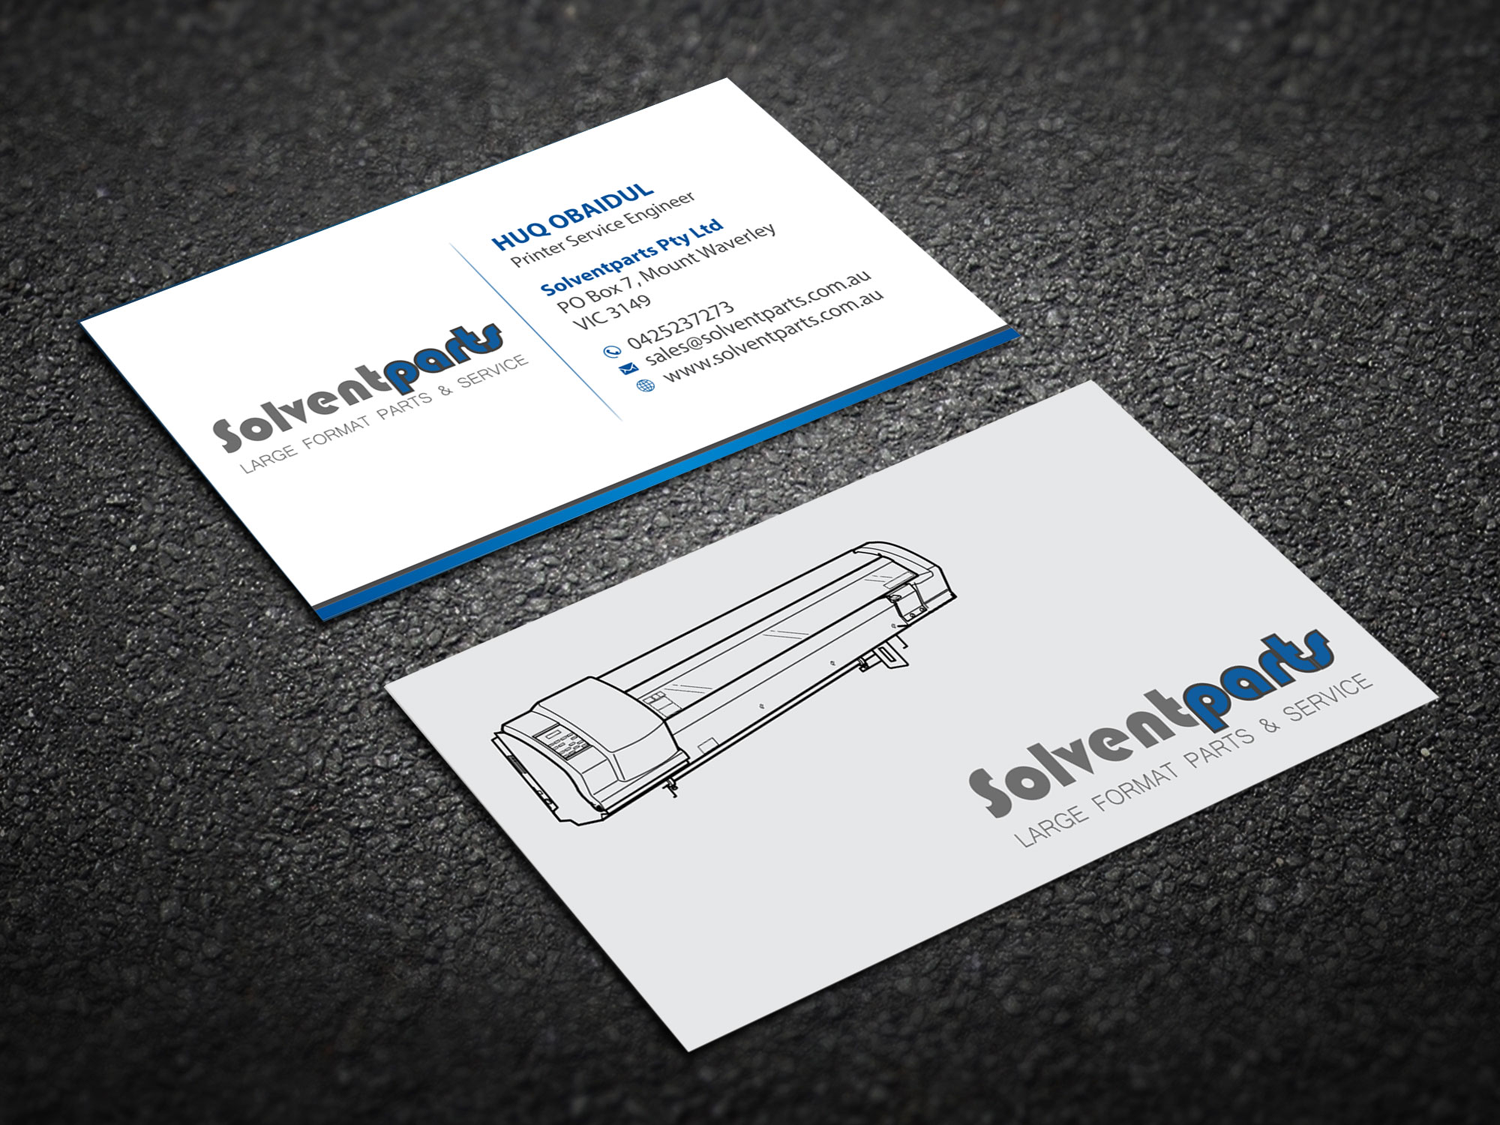 Personable conservative business business card design for business card design by madhuraminfotech for solventparts design 14719005 reheart Image collections